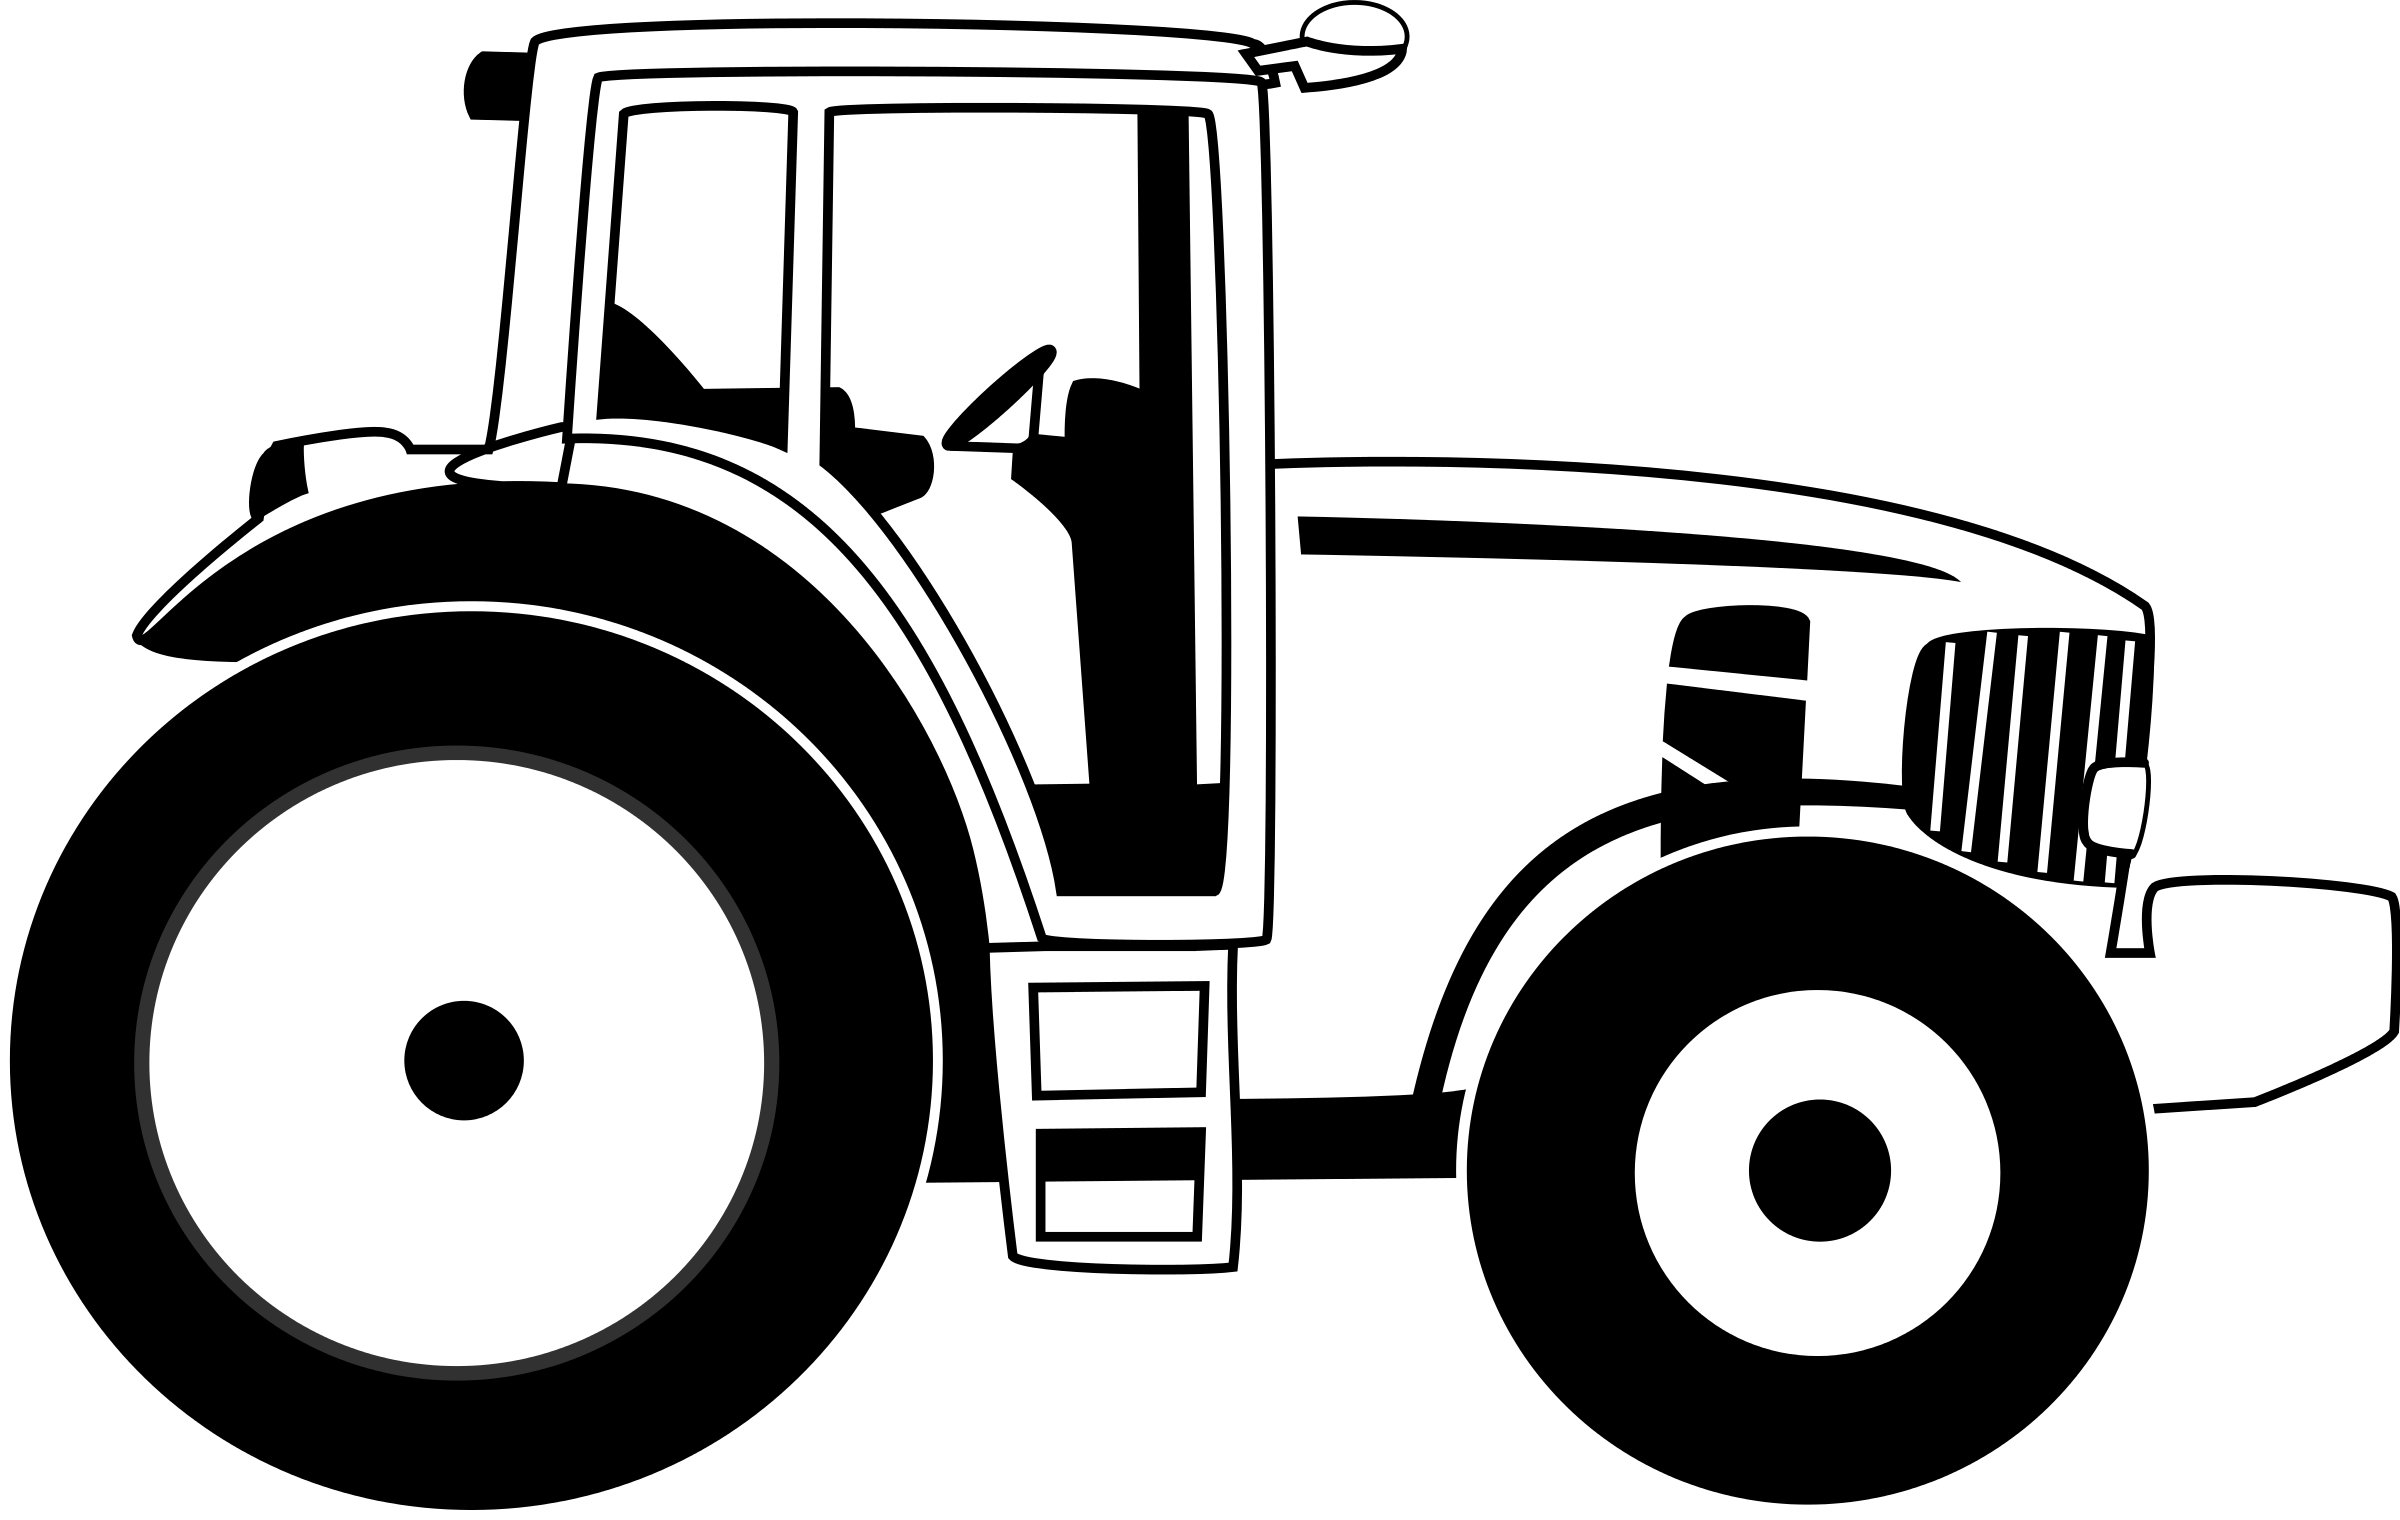 free black and white tractor clipart tractors clipart pinterest rh pinterest com free tractor clipart images free vintage tractor clipart